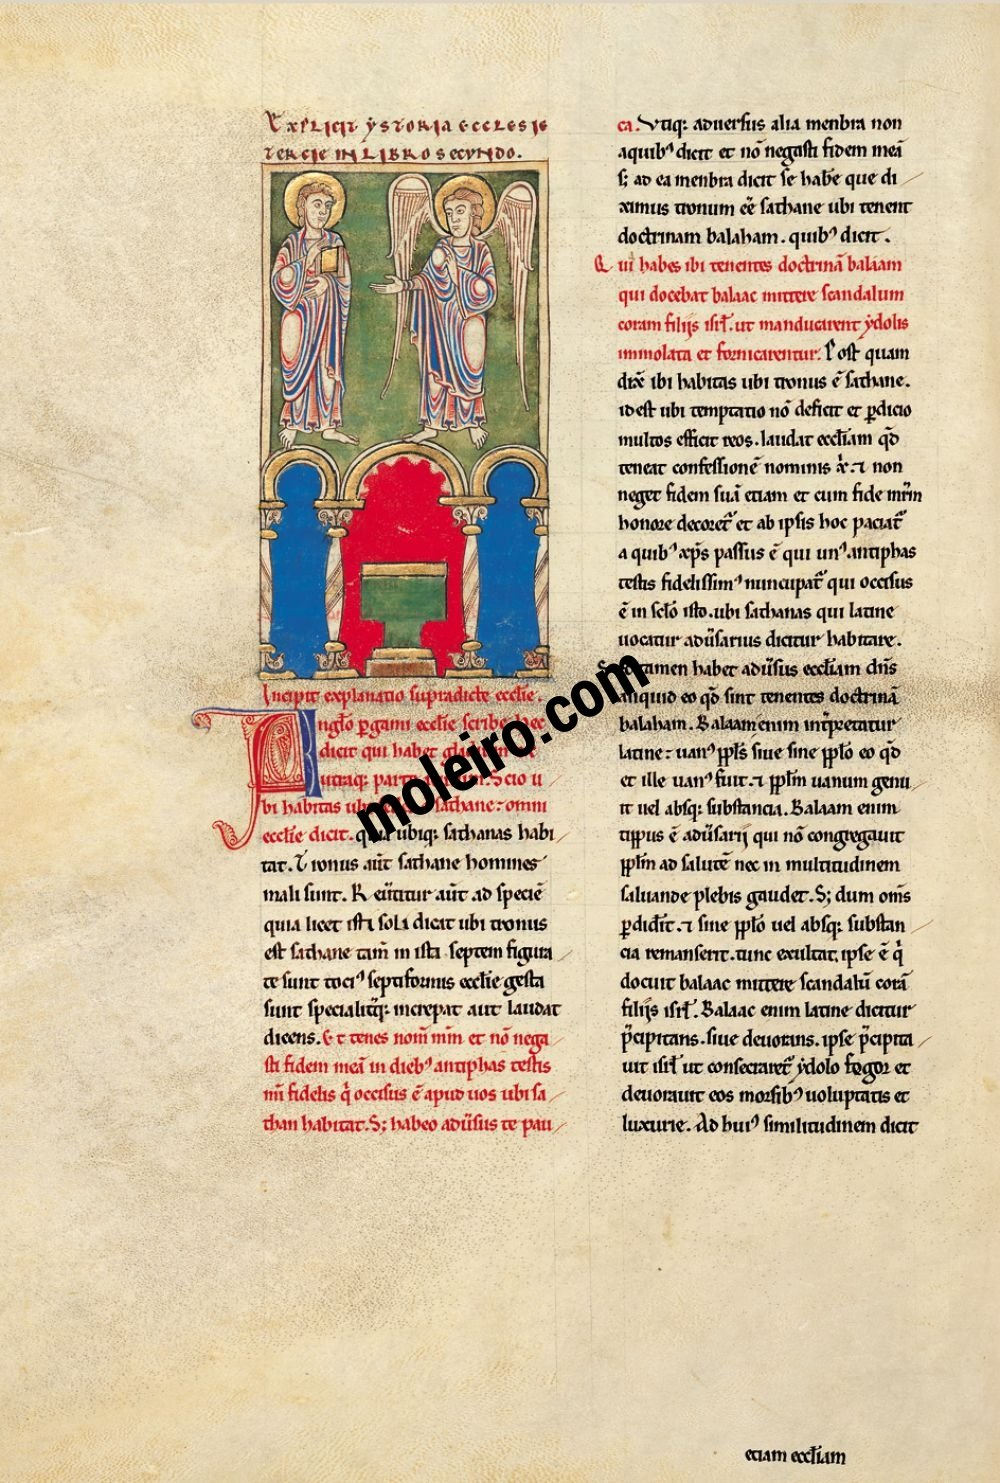 Cardeña Beatus f. 48v, The message to the Church of Pergamum